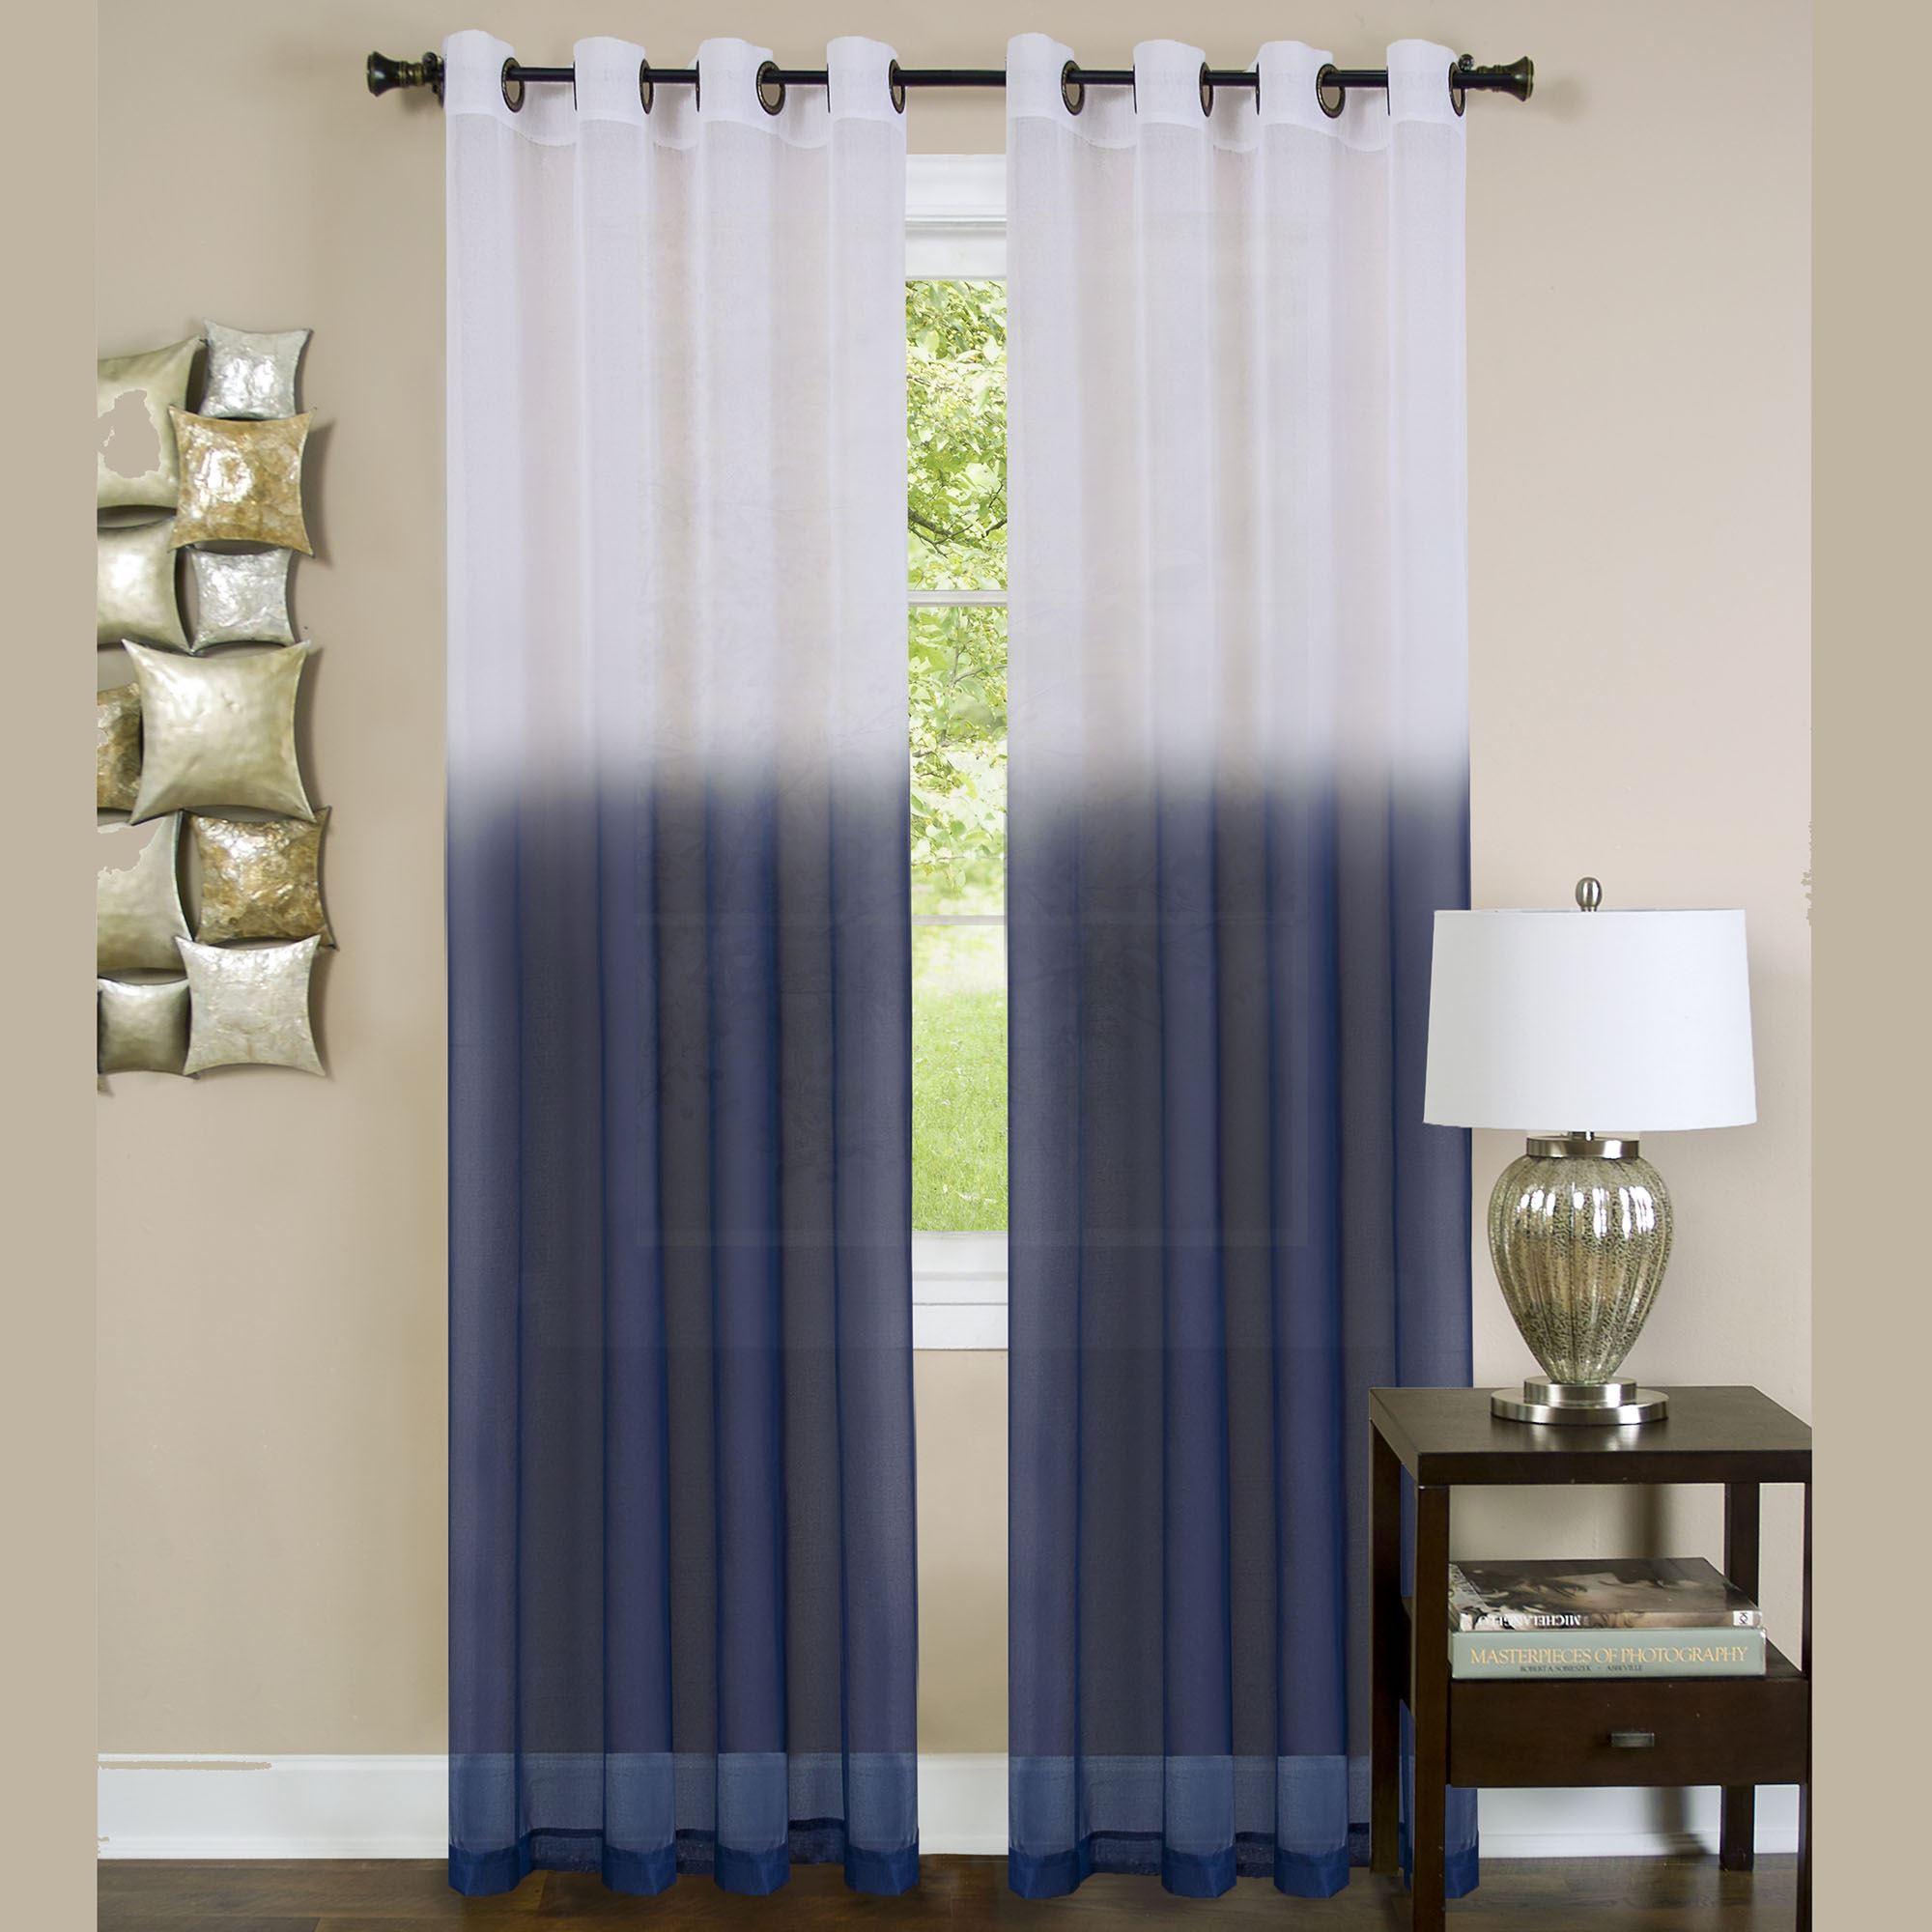 zero efficient easton curtains panels curtain ombre dp from blackout amazon manufacturer sun energy com panel blackberry the